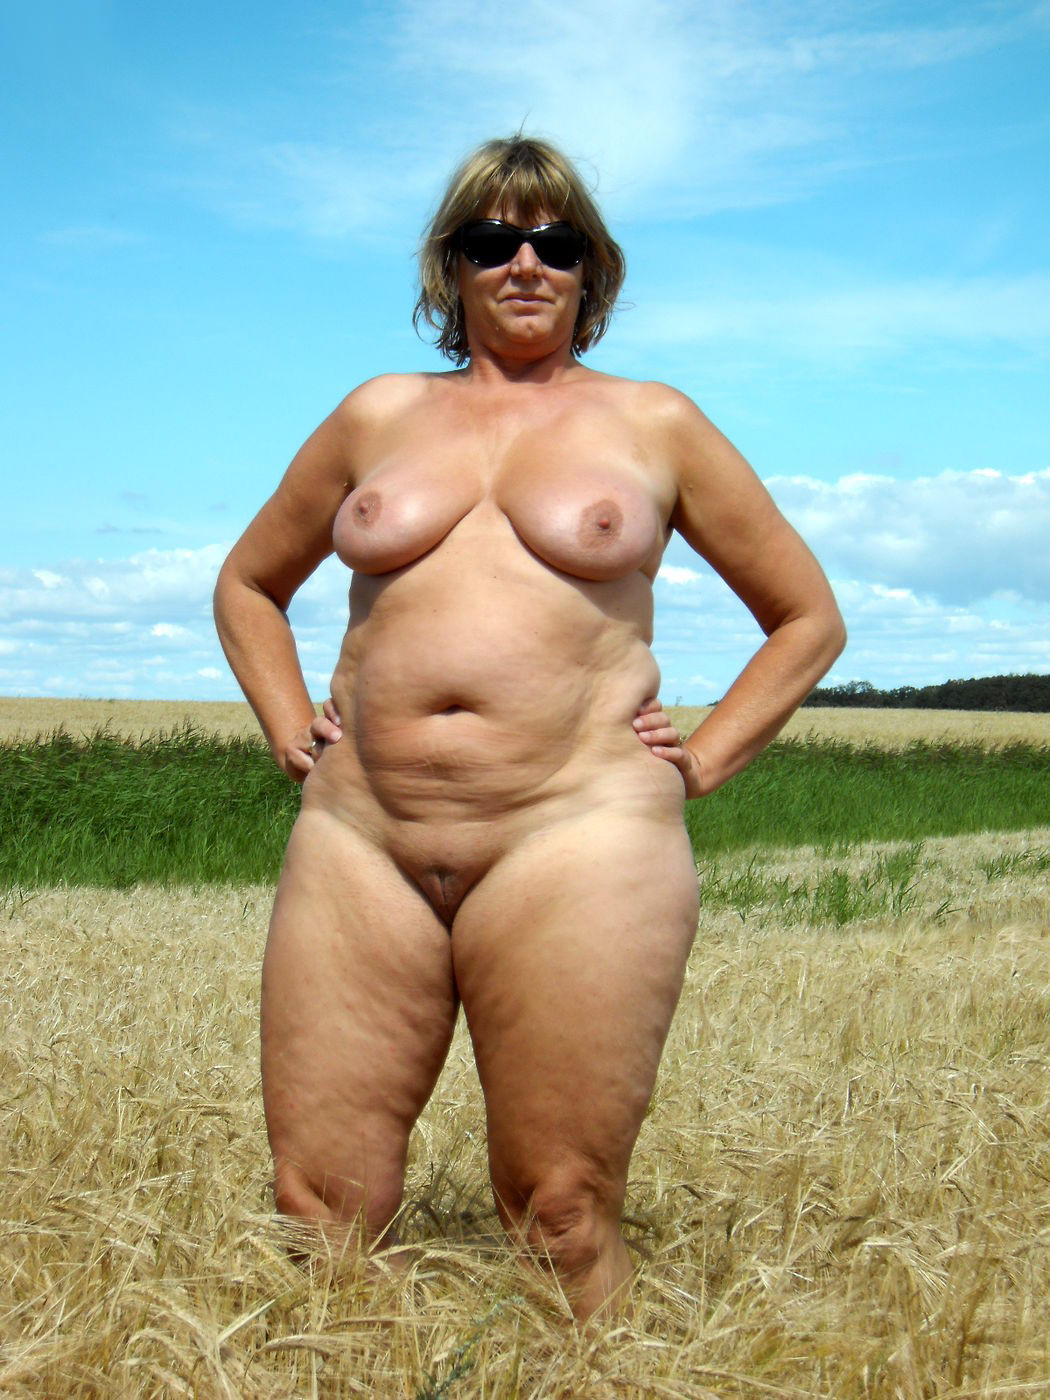 Bbw nudist pictures